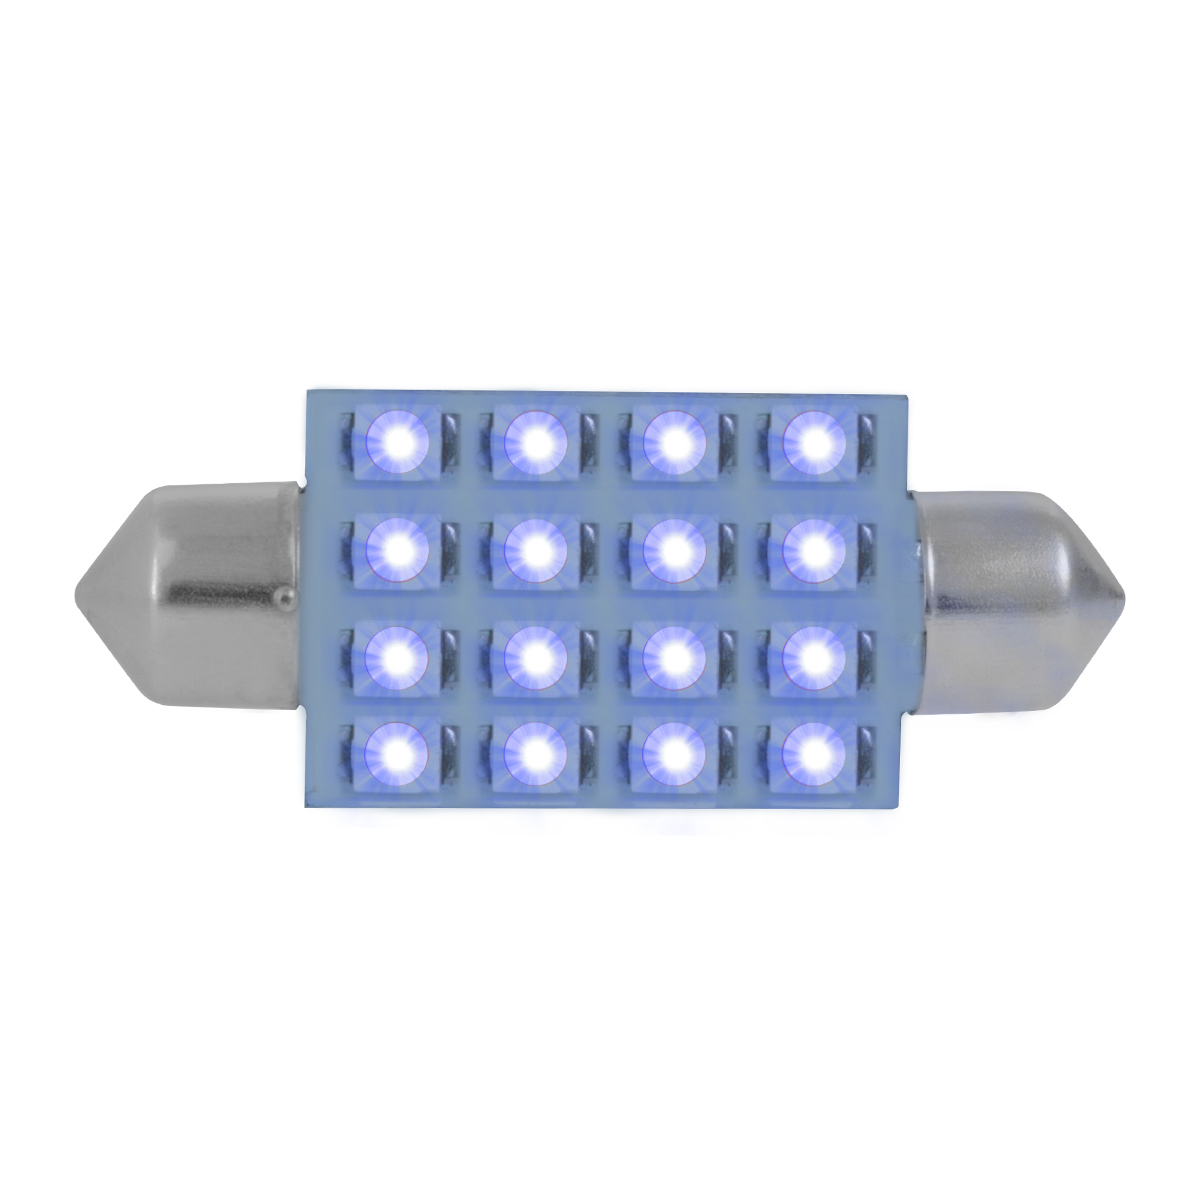 76101 Blue 211-2 Dome Type 16 LED Light Bulb